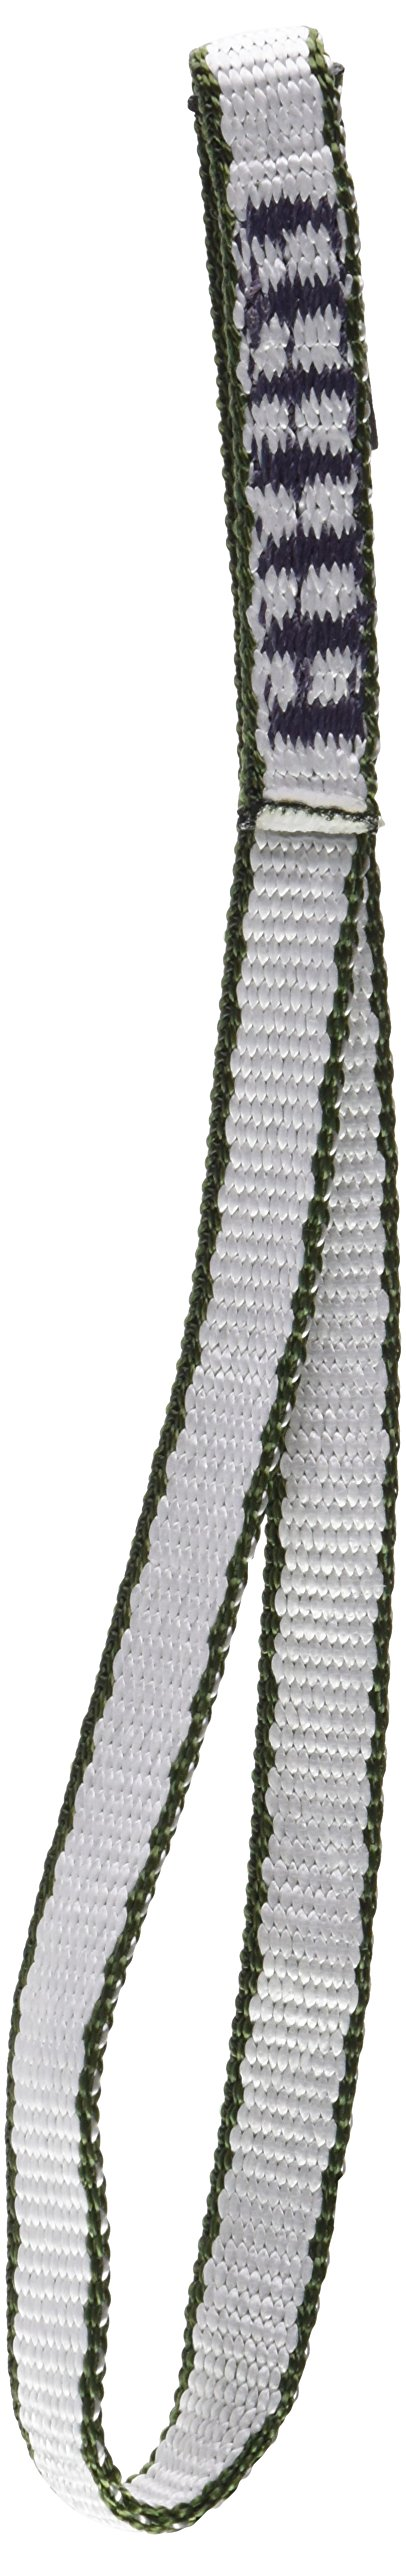 Petzl St'Anneau Dyneema Sling Yellow 60cm by Petzl (Image #1)